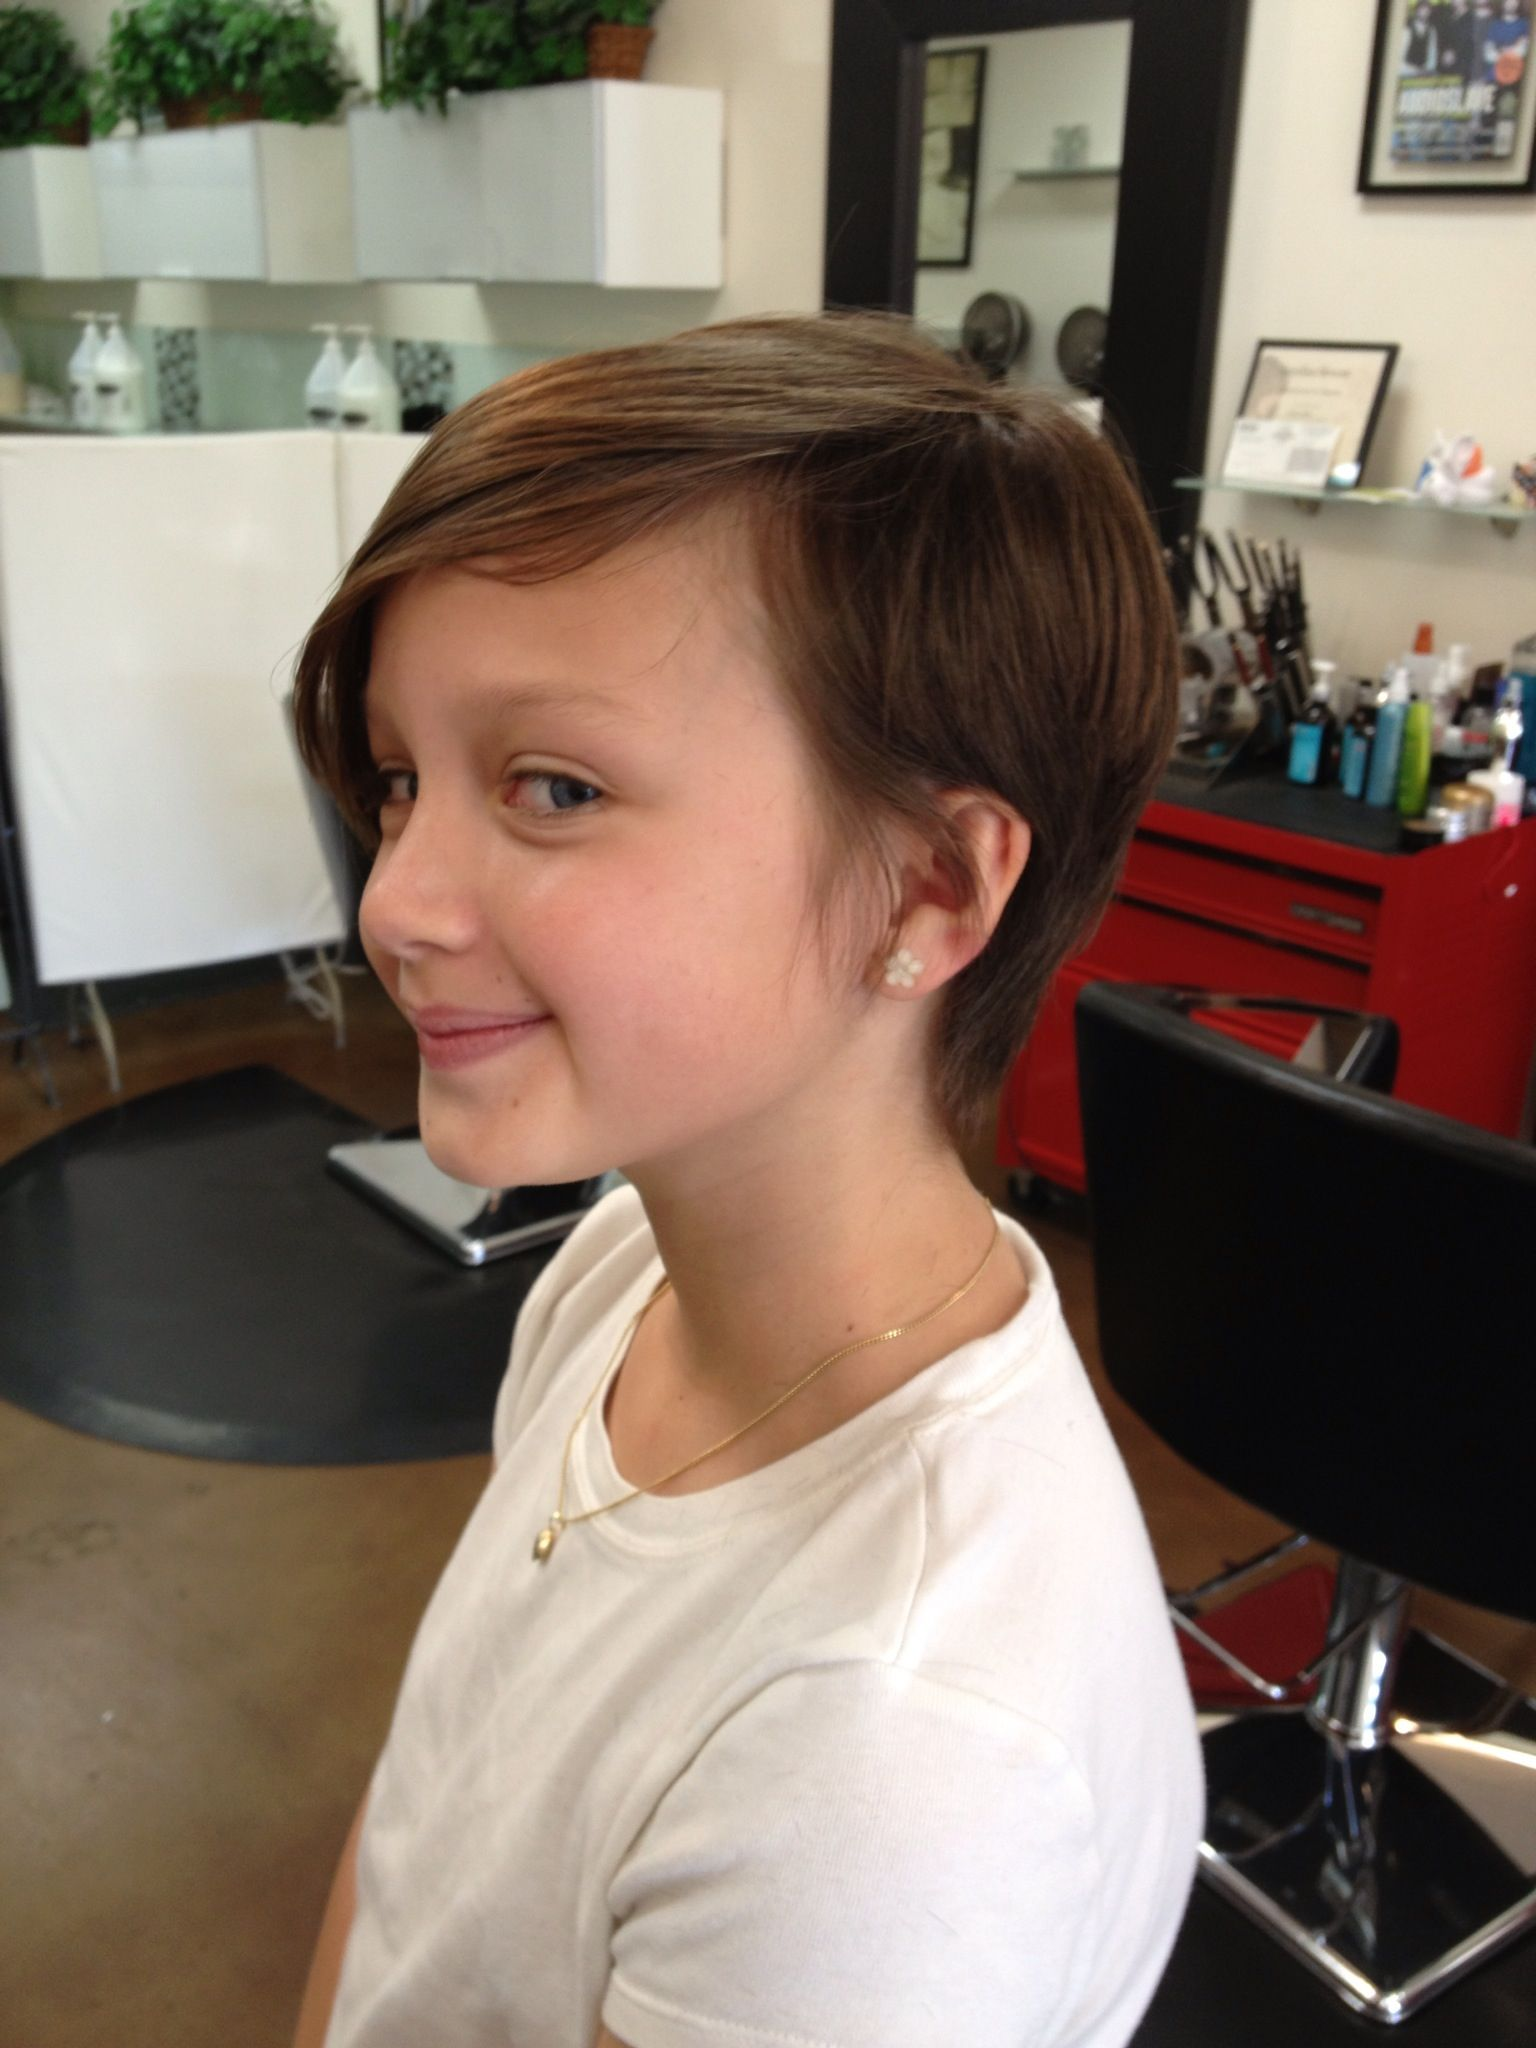 cool pixie cut for a tween. | hairstyles-short/pixie | girl